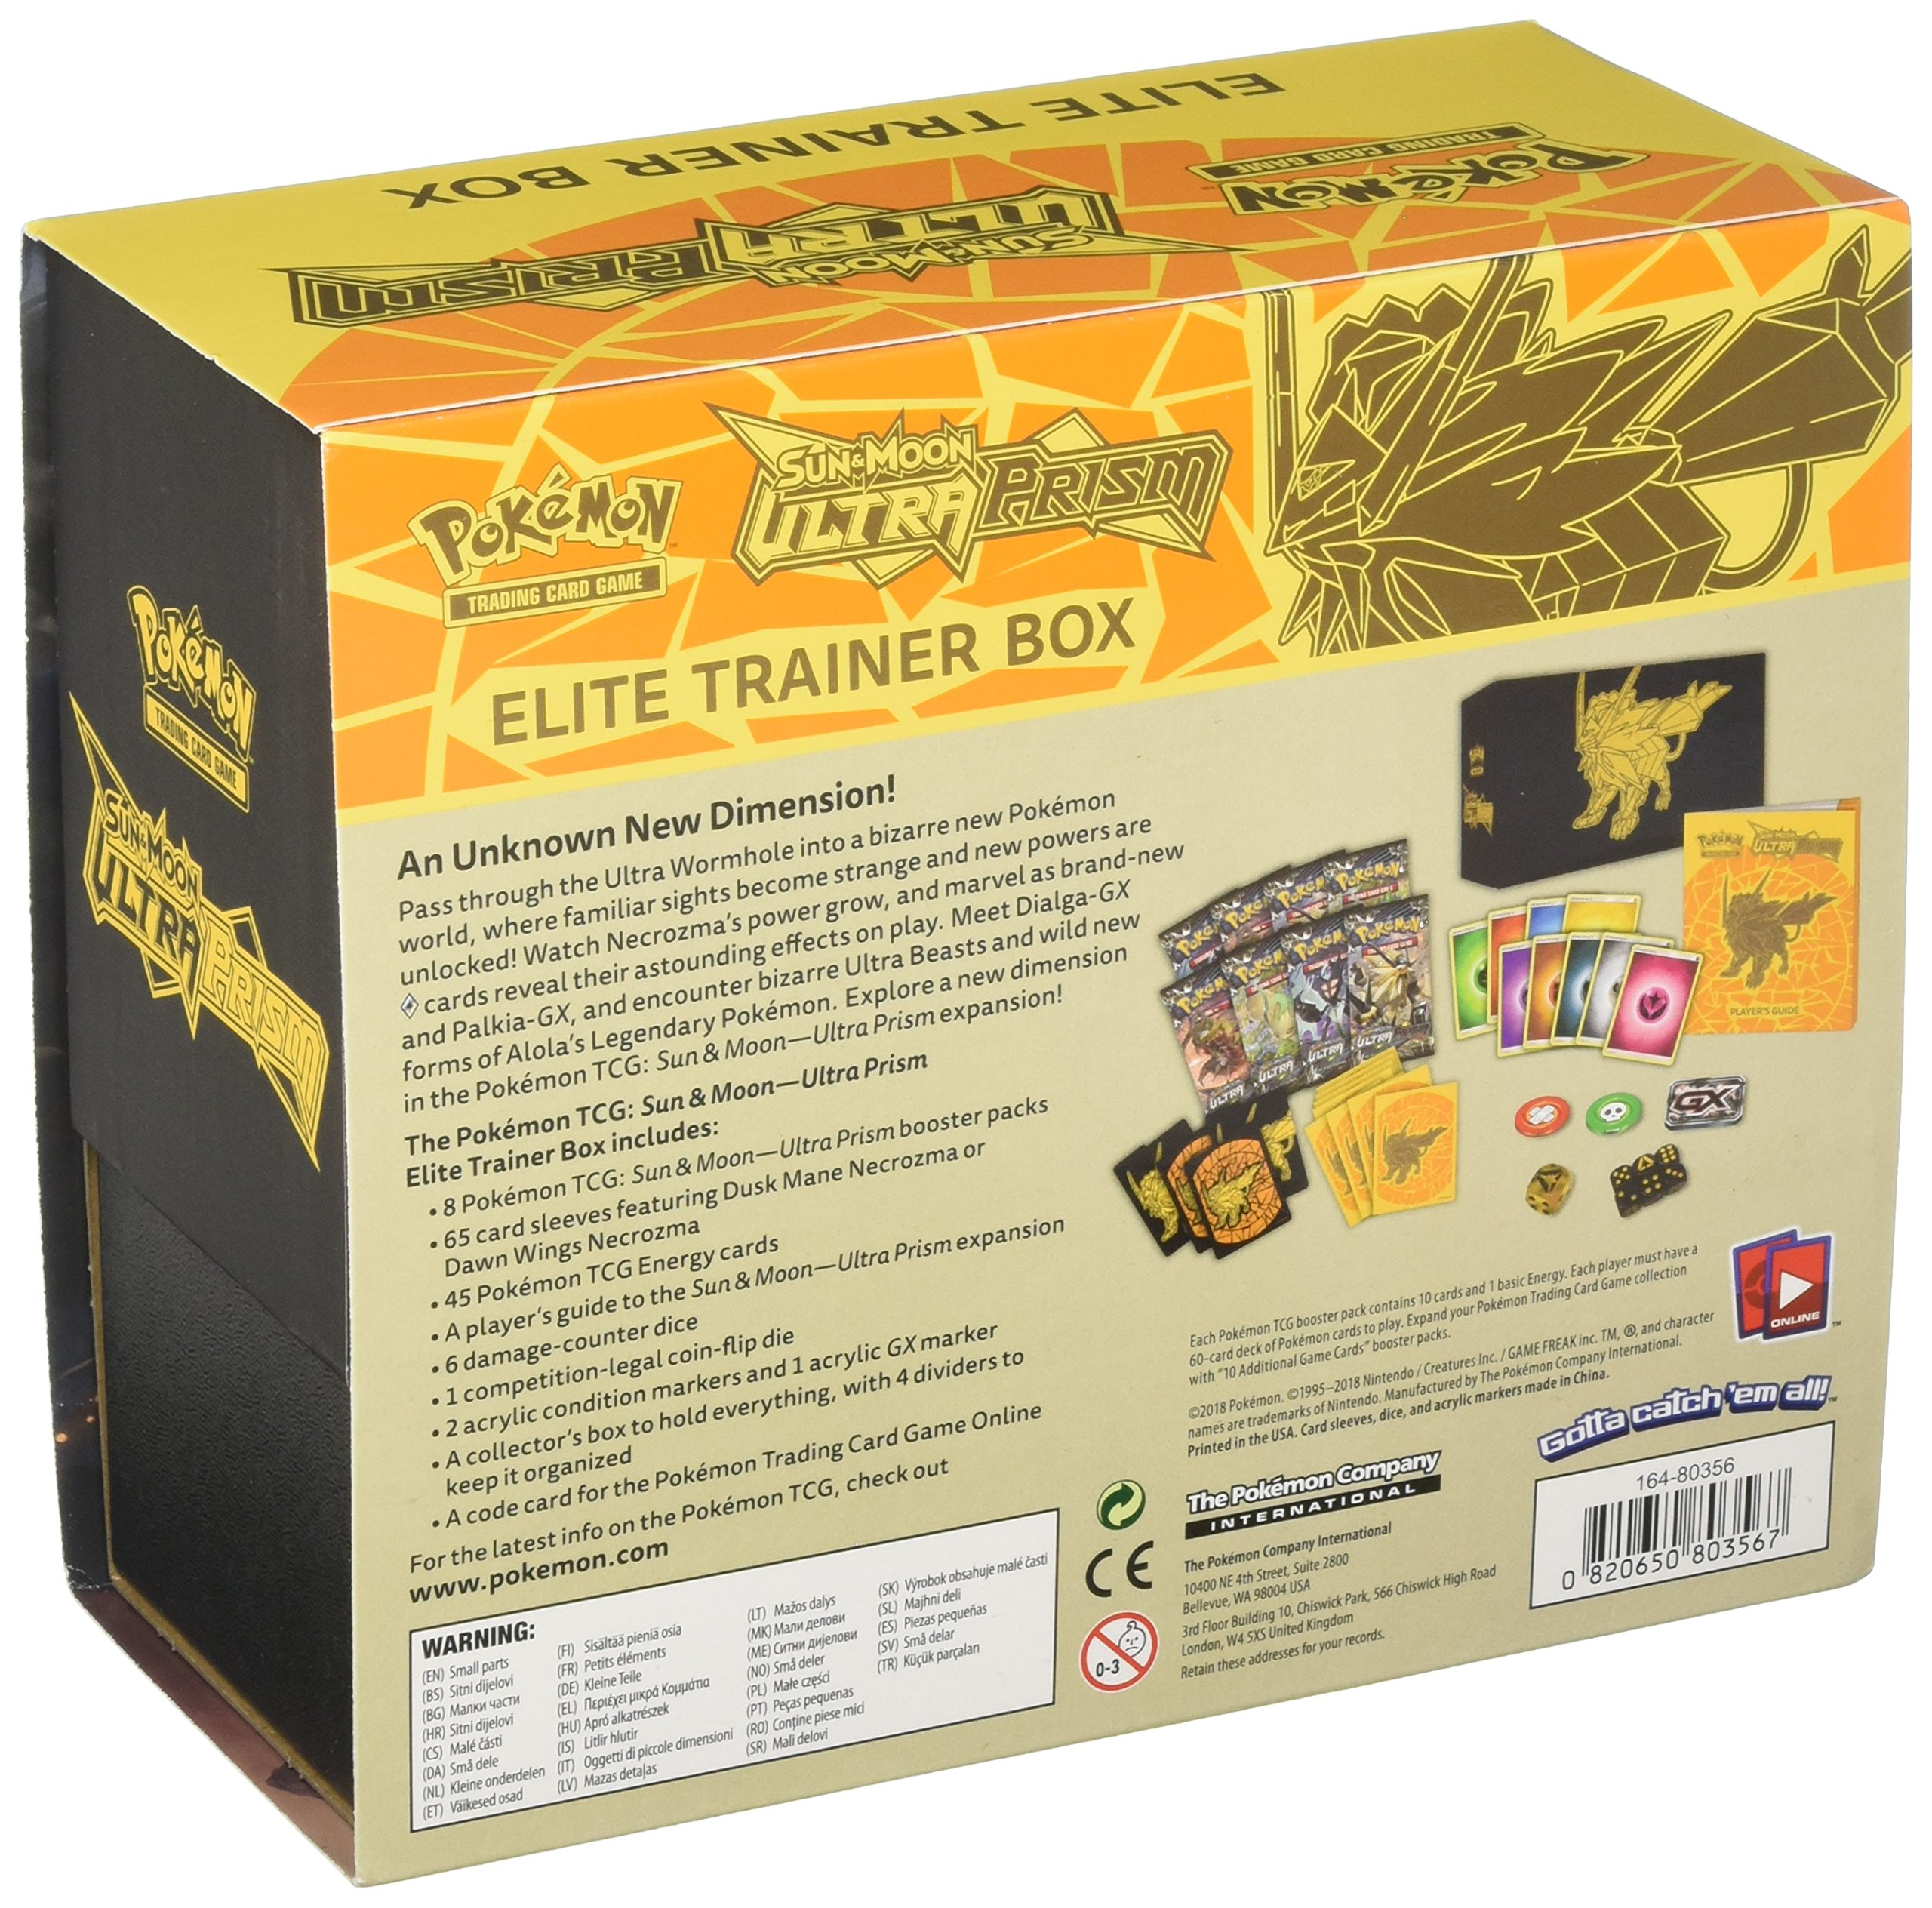 Pokemon TCG Sun and Moon Ultra Prism Necrozma Elite Trainer Box Dusk Mane Card and Dice Set With 8 Booster Packs, Player's Guide, 6 Damage Counter Dice, Competition Coin Flip Die & More by Pokemon (Image #2)